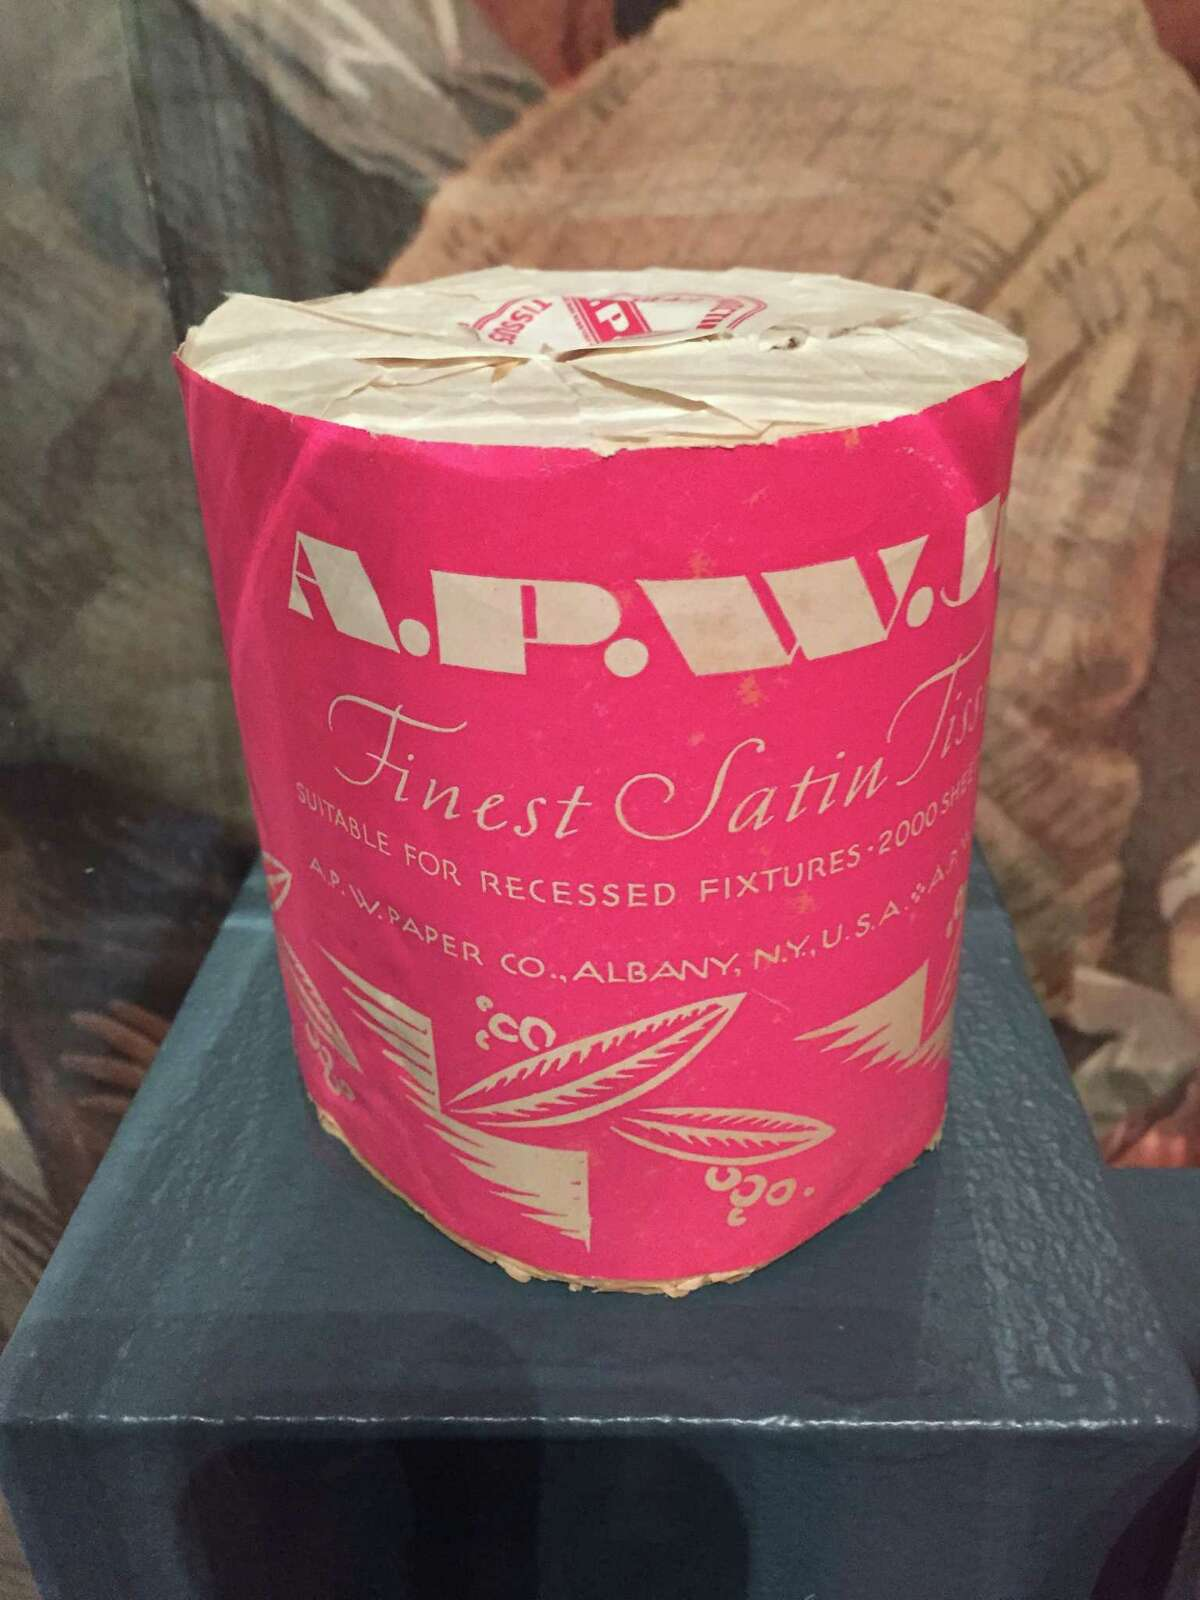 America's first toilet paper was patented in 1871 by Seth Wheeler of Albany. His A.P.W. (Albany Perforated Wrapping Company) toilet paper was marketed as cheap, neat and hygienic. This roll was made in 1935 at the Albany Isntitute of History & Art's